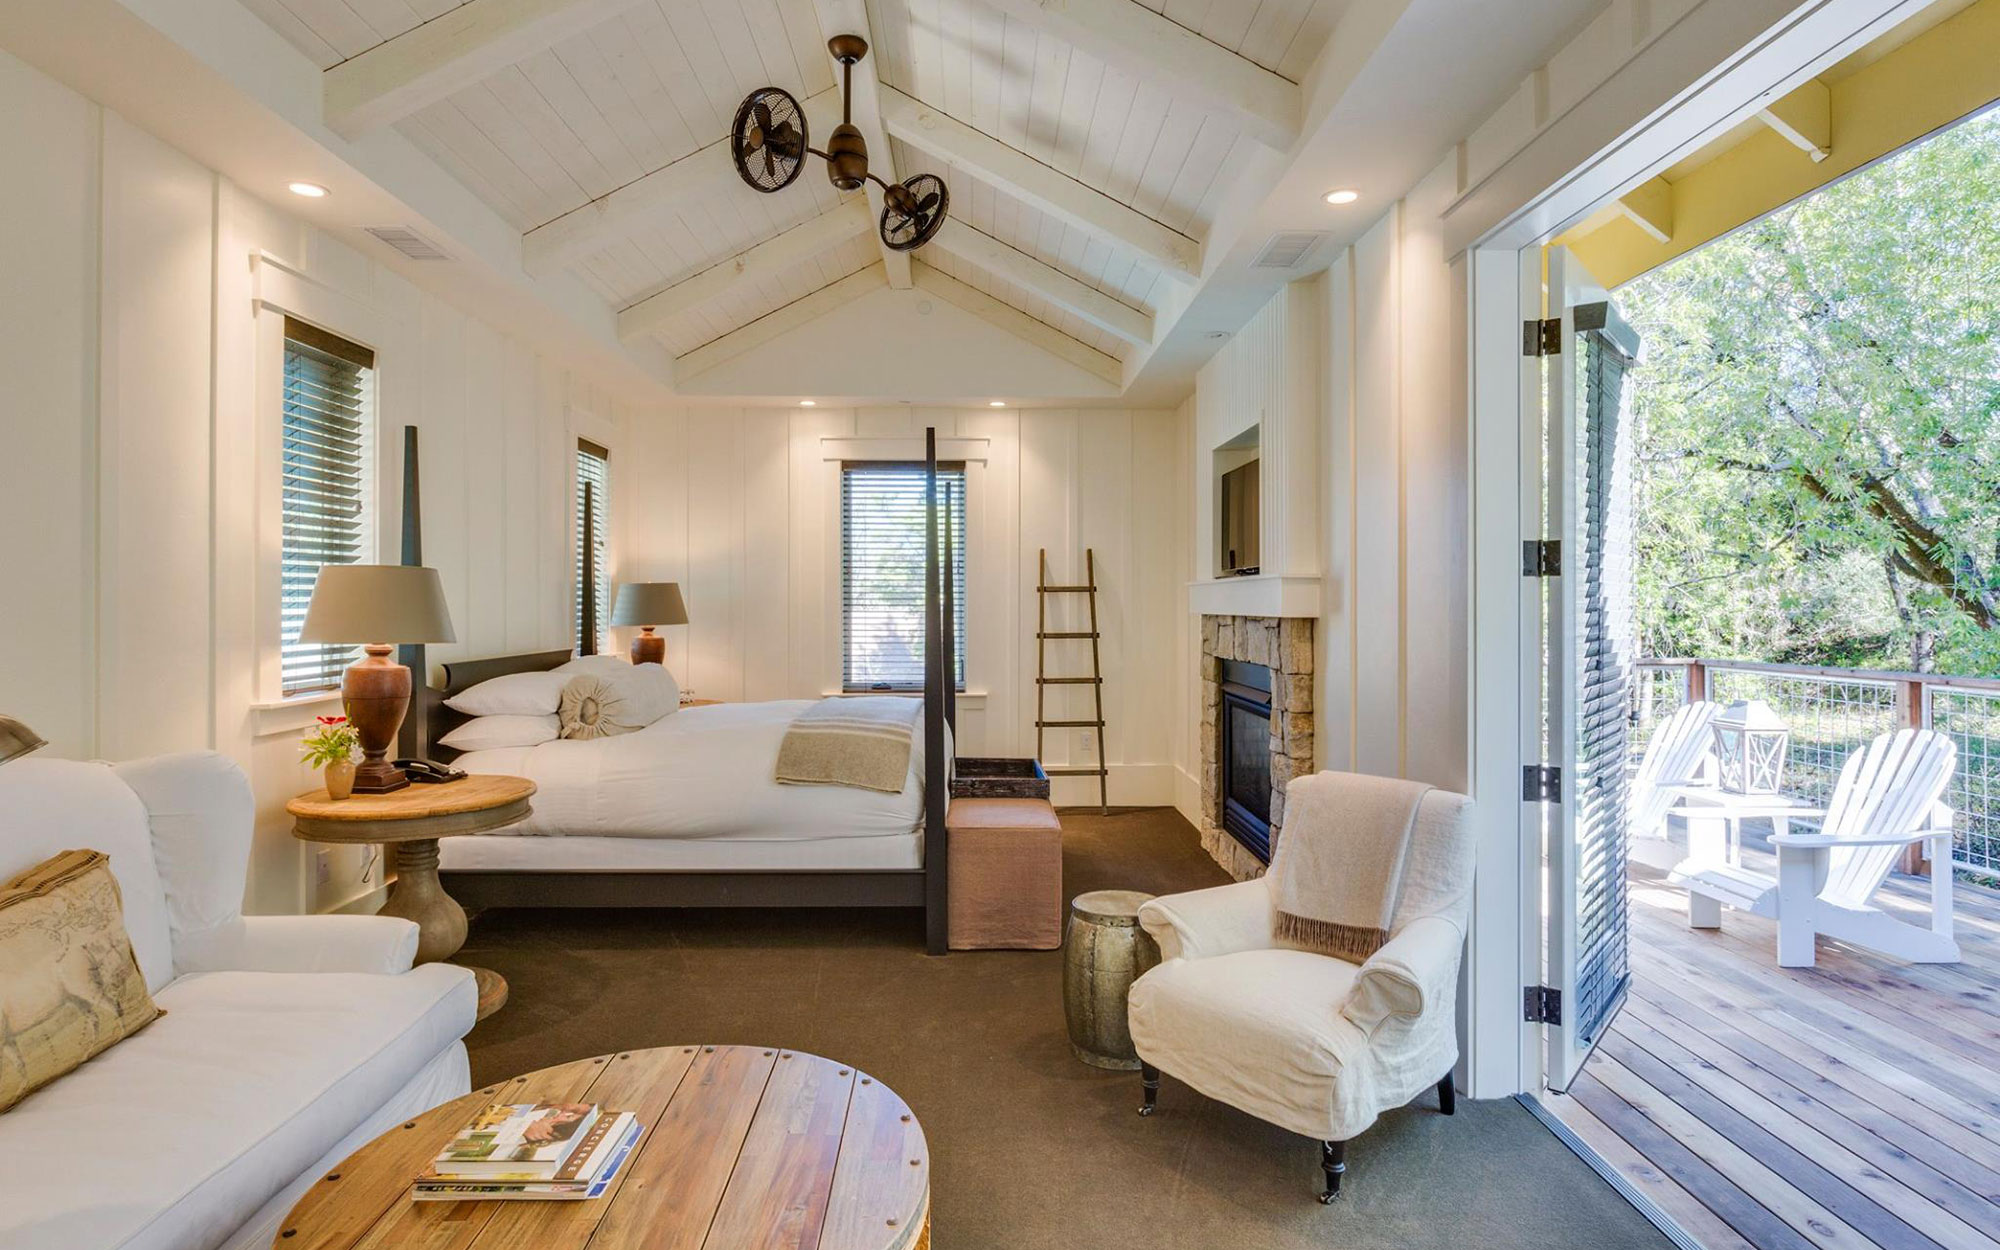 No. 4: Farmhouse Inn, Forestville, California